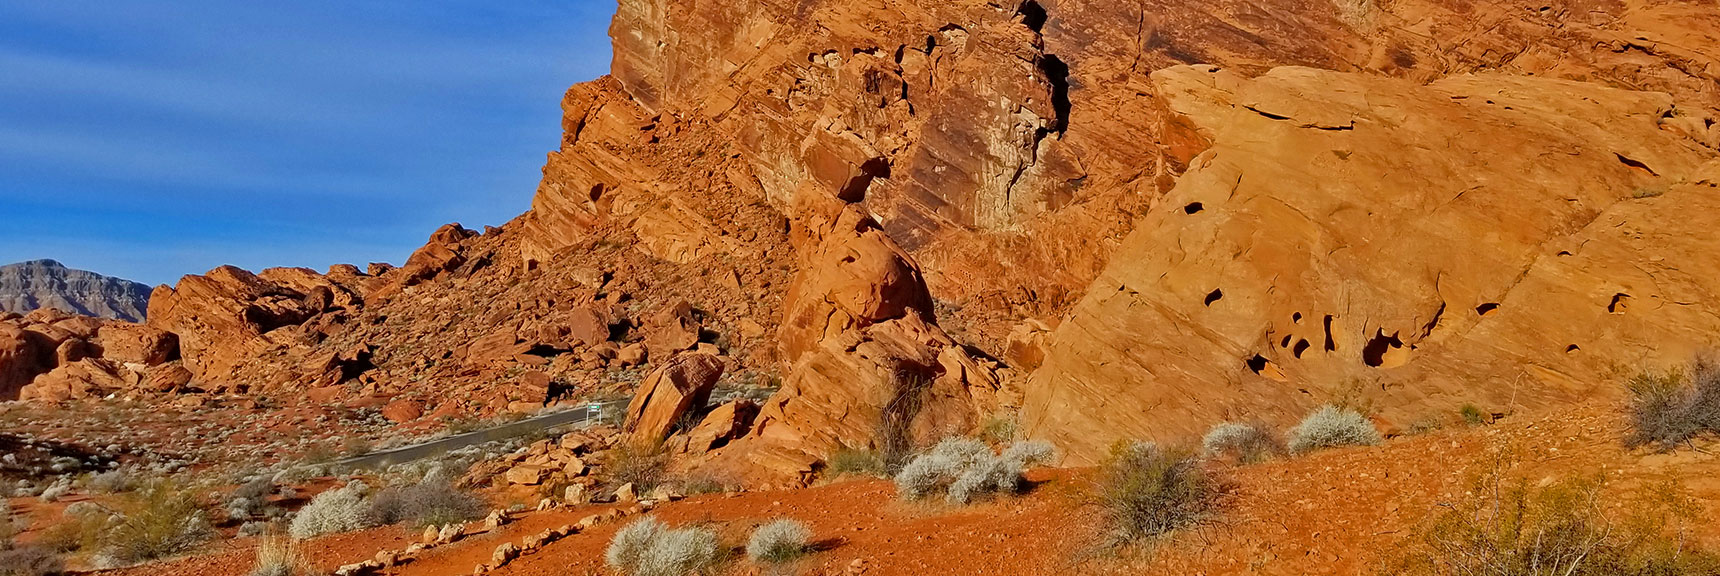 Approaching Balancing Rock in Valley of Fire State Park, Nevada